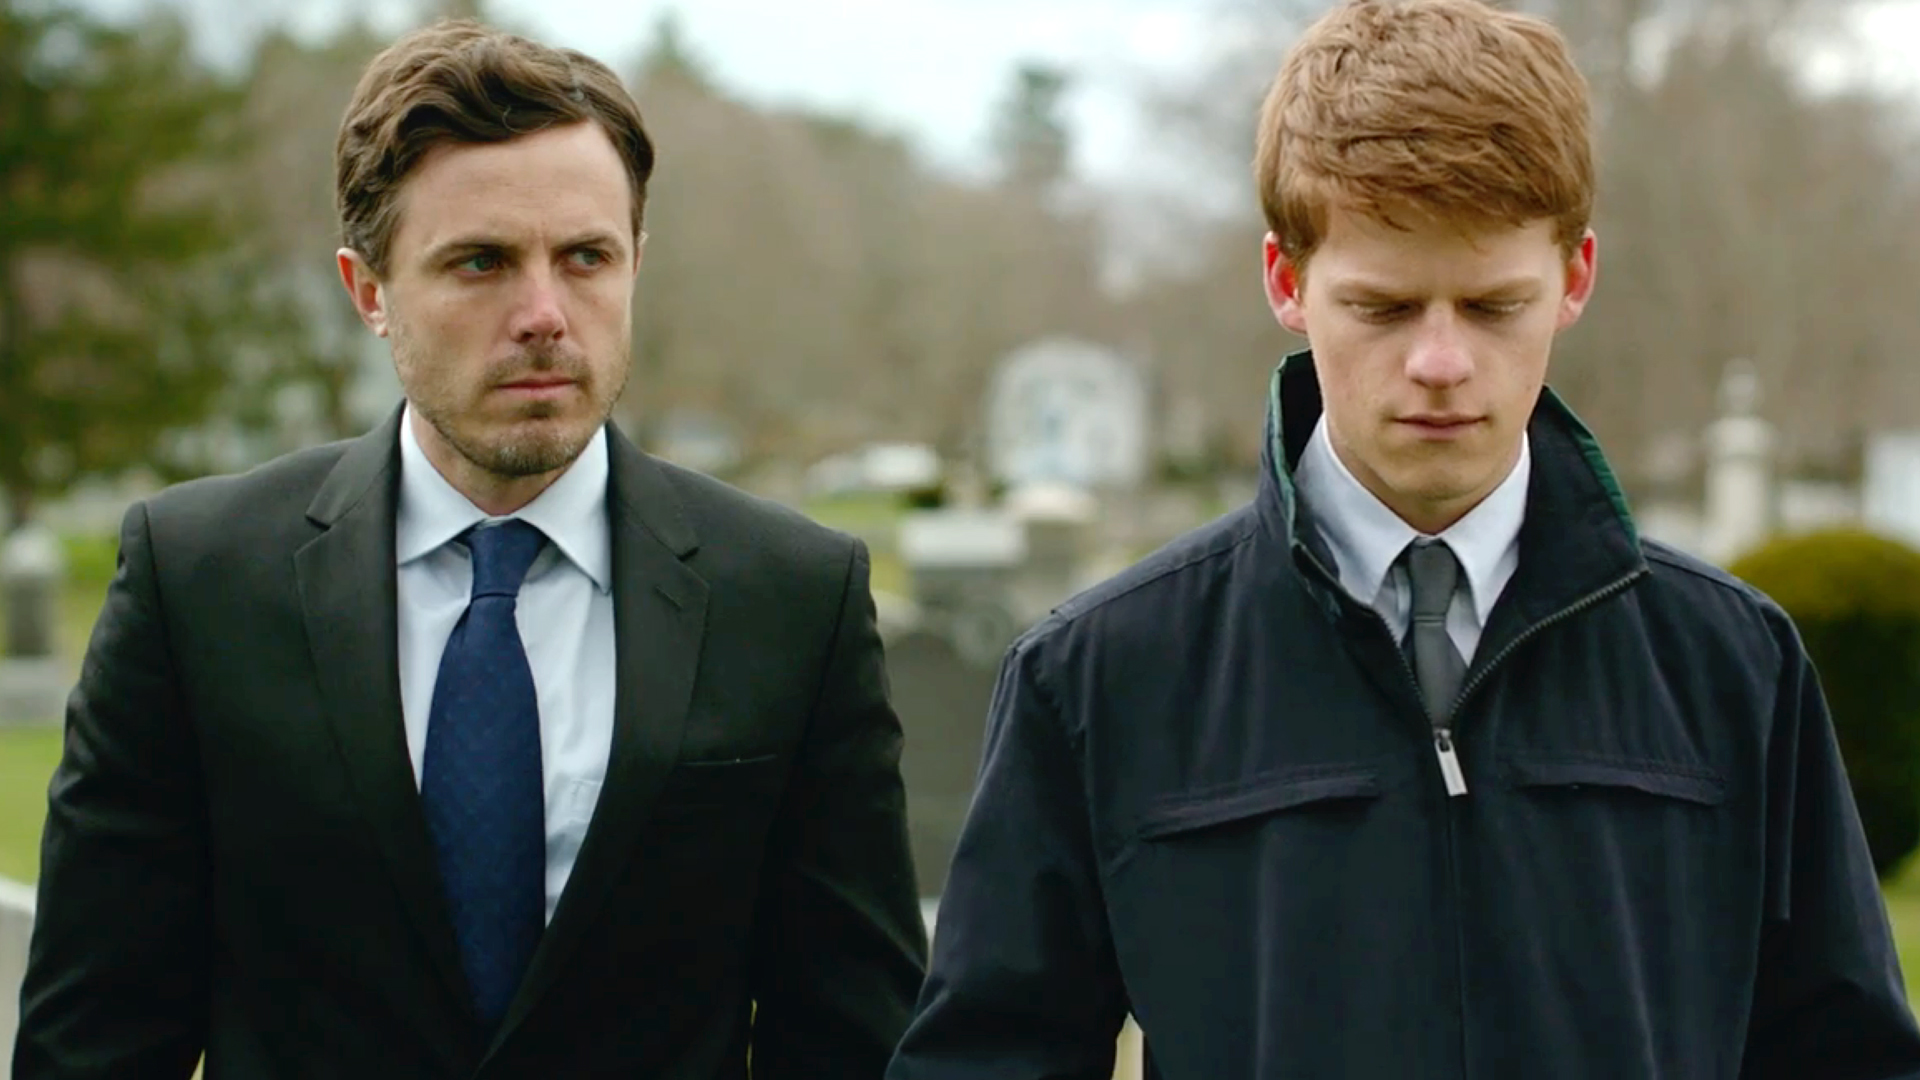 Likely Oscar nominees Casey Affleck and Lucas Hedges kick off their awards run for 'Manchester'